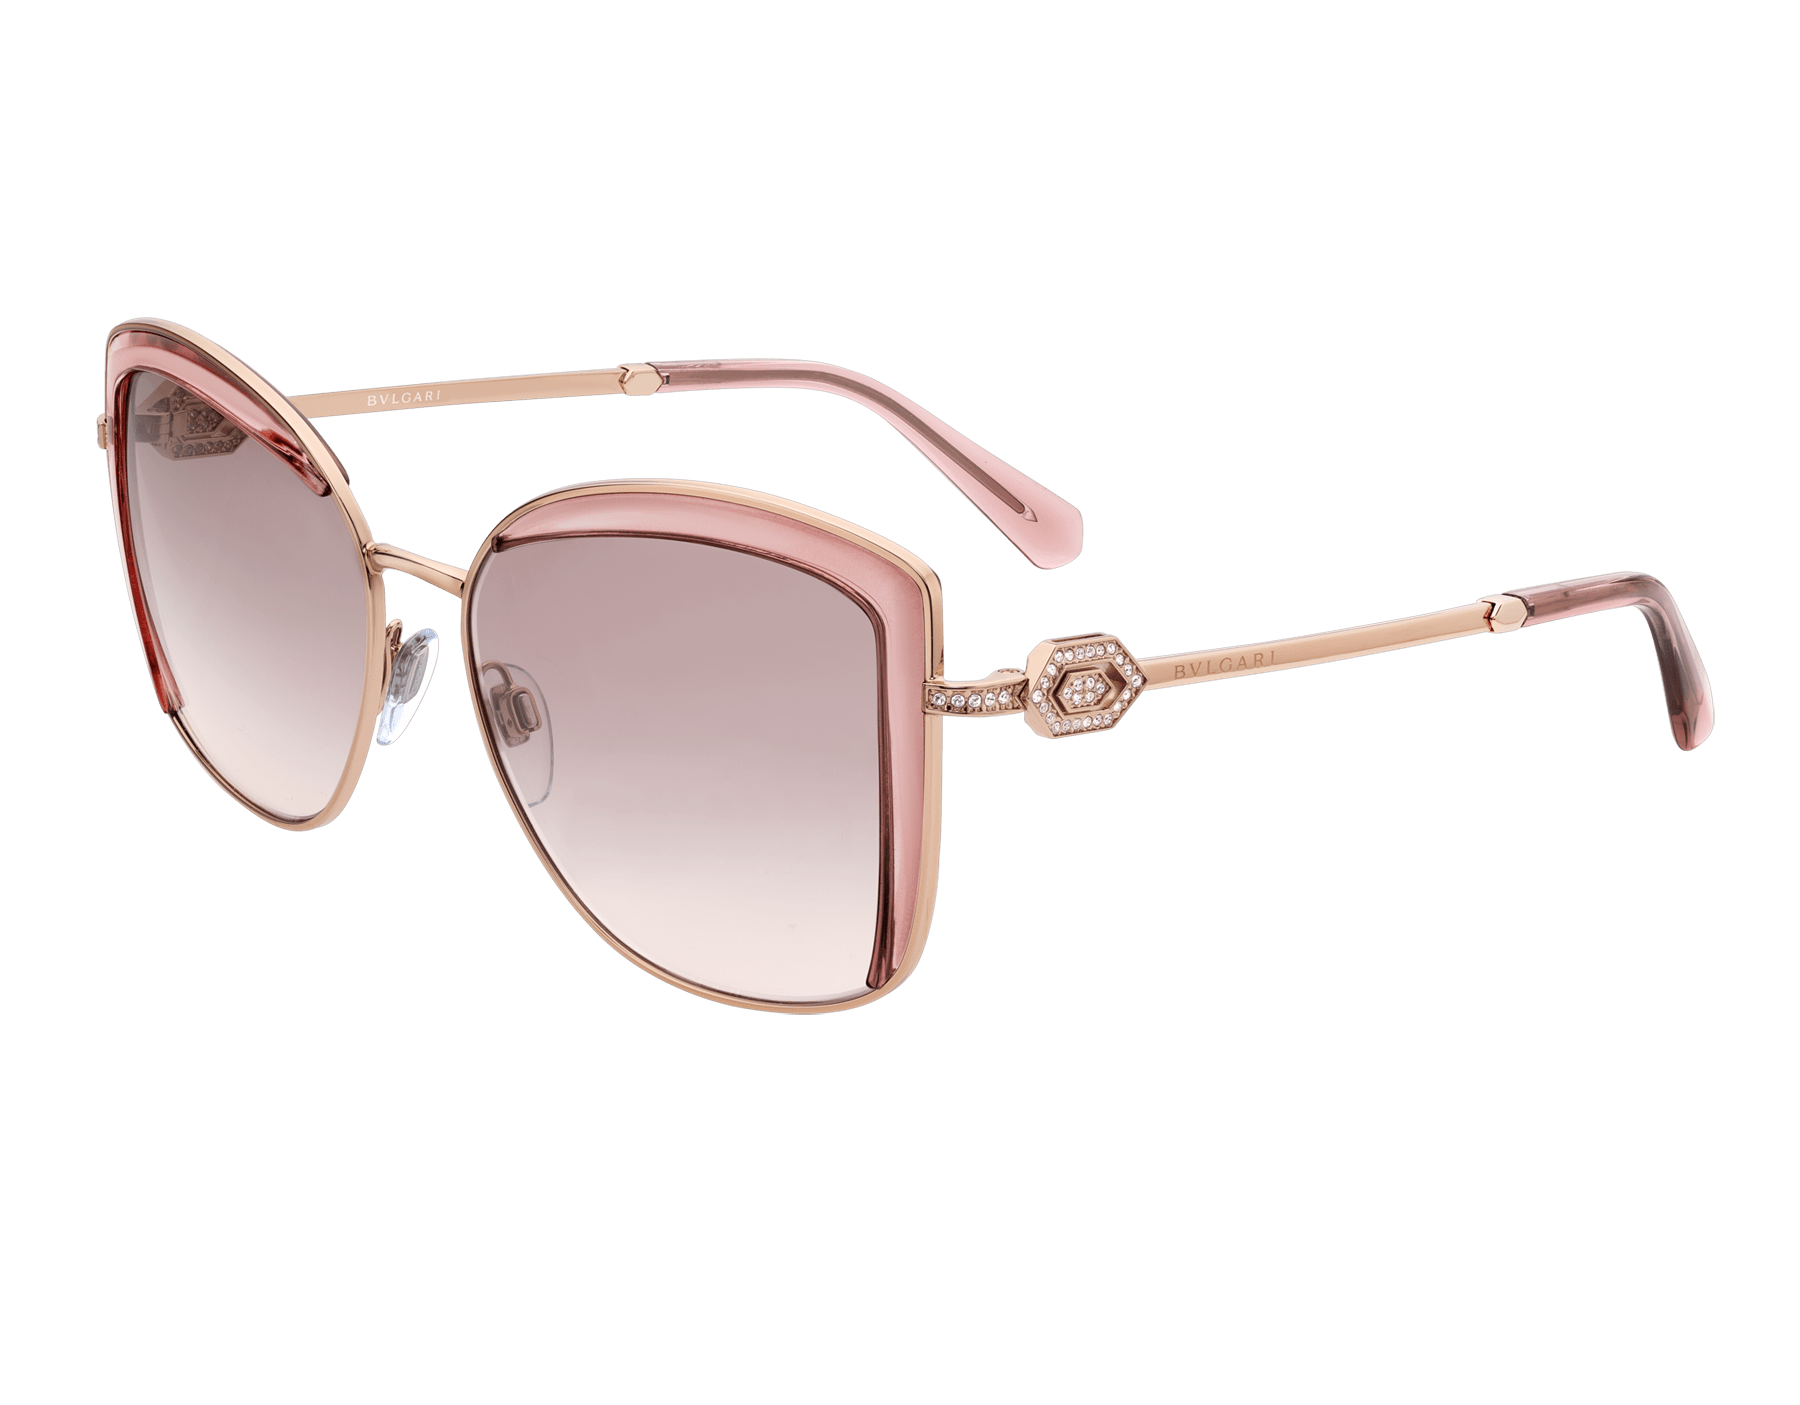 Bulgari Serpenti squared metal sunglasses with Serpenti openwork metal décor with crystals. 903905 image 1